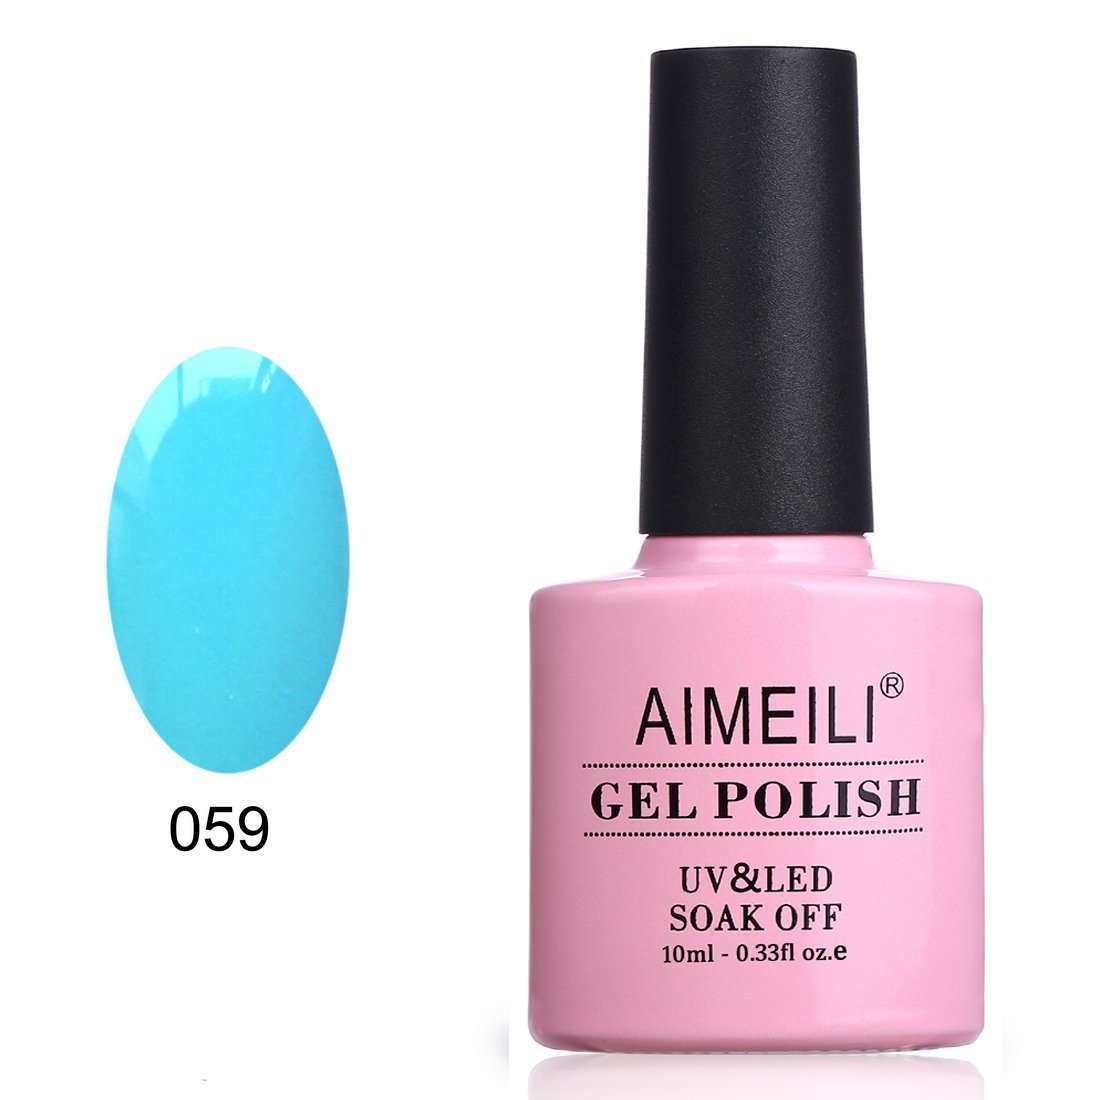 AIMEILI Soak Off UV LED Gel Nail Polish - Neon Pacific (059) 10ml